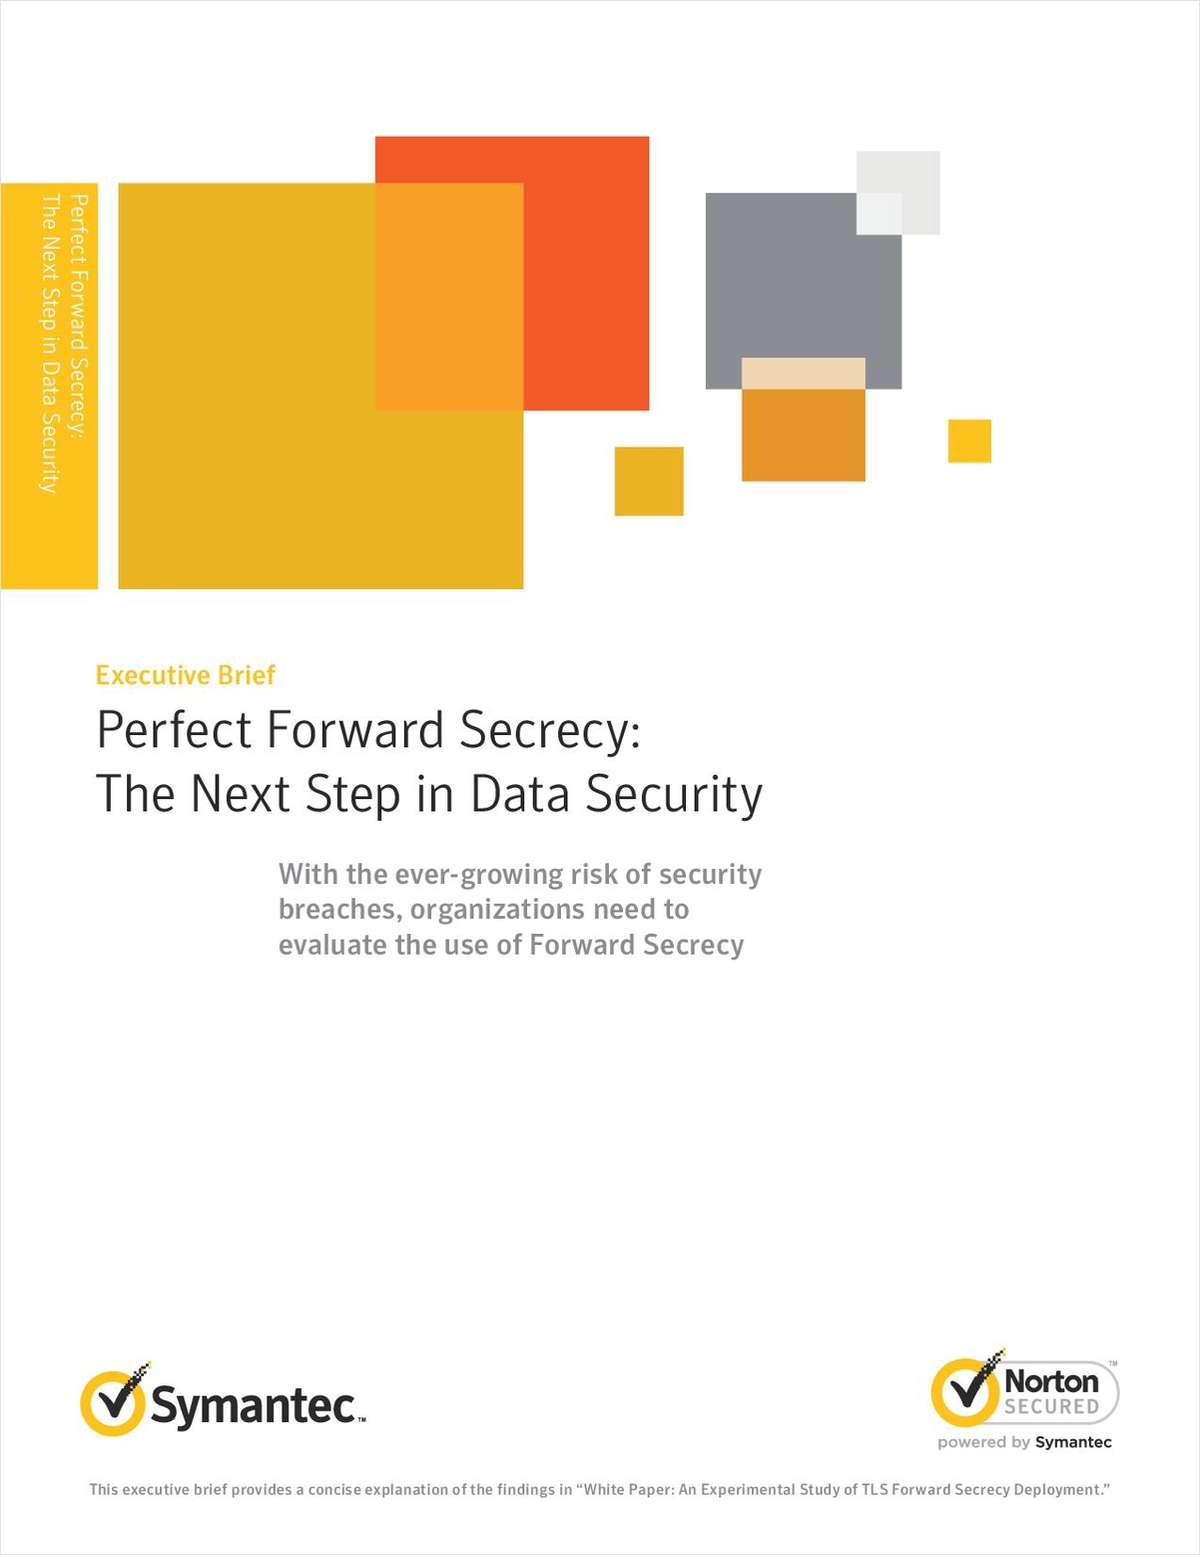 Perfect Forward Secrecy - The Next Step in Data Security